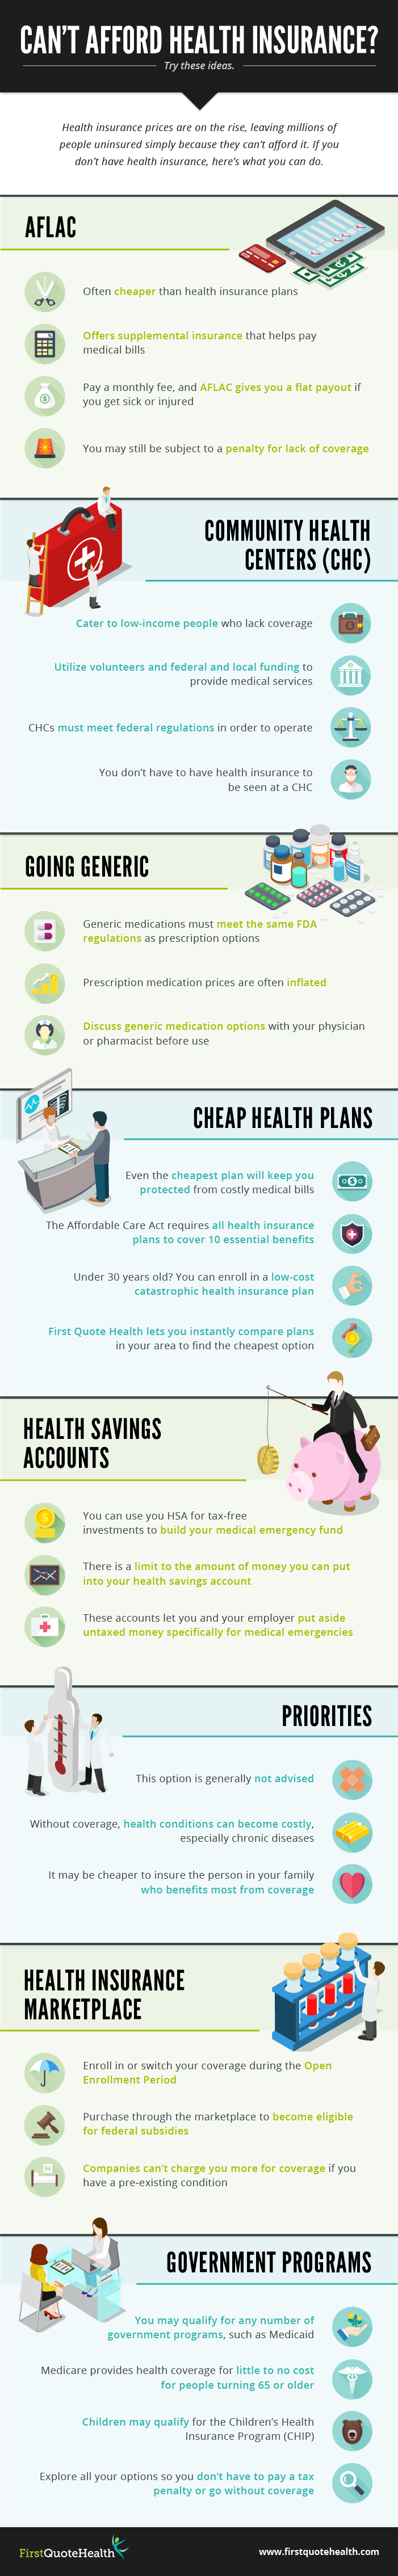 Infographic for cheap health insurance options and alternatives for people who can't afford